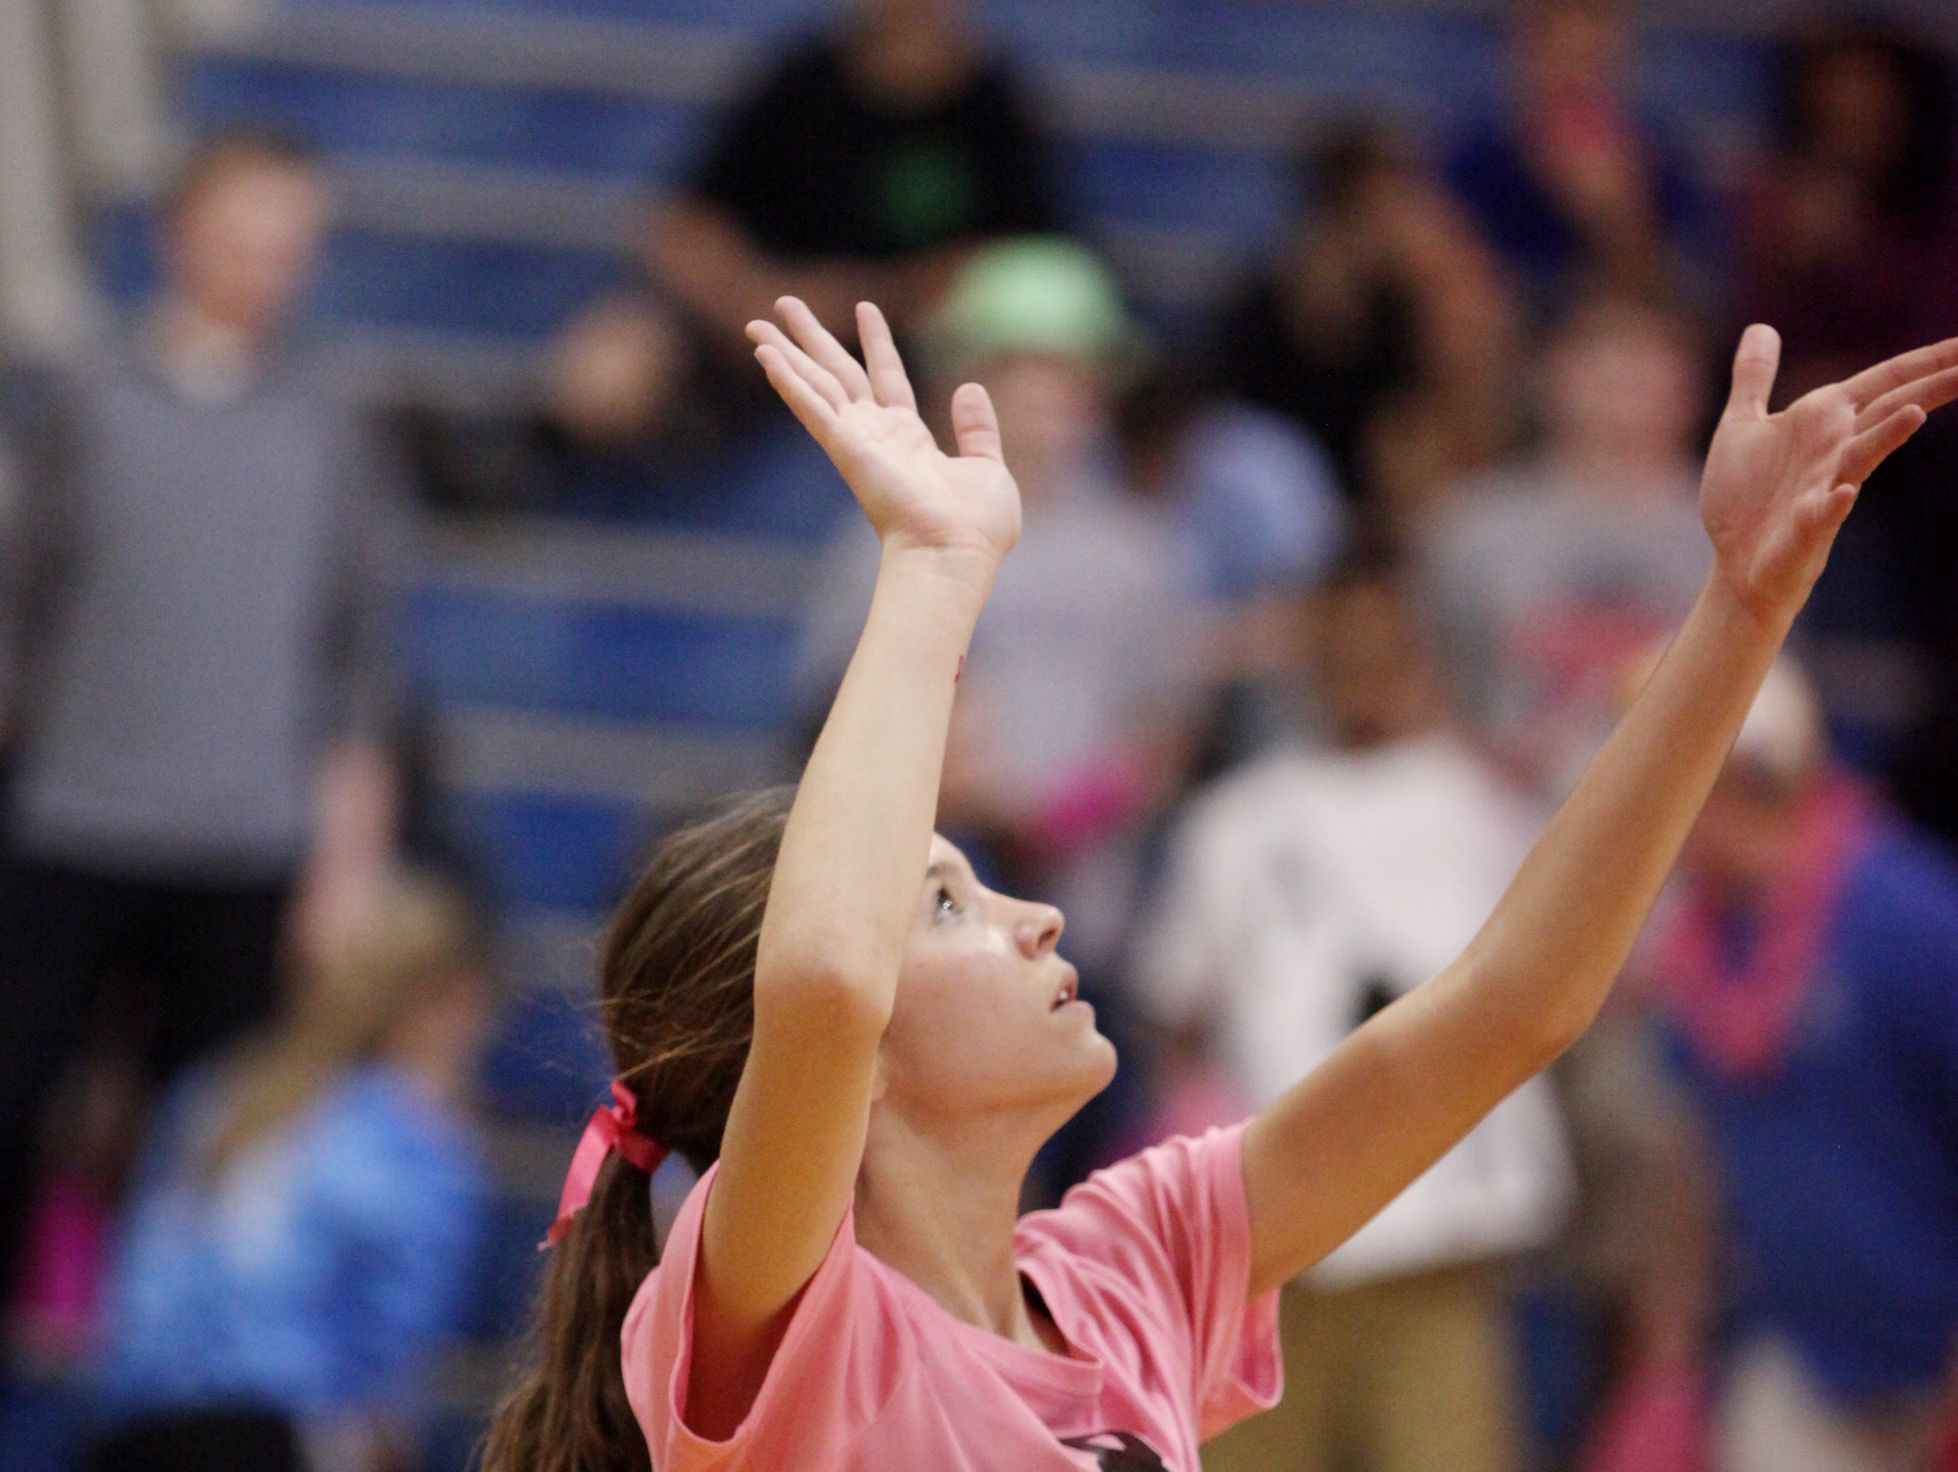 Fort Defiance's Casey Mozingo serves the ball during the volleyball match against R.E. Lee on Tuesday, Oct. 18, 2016 at Fort Defiance.